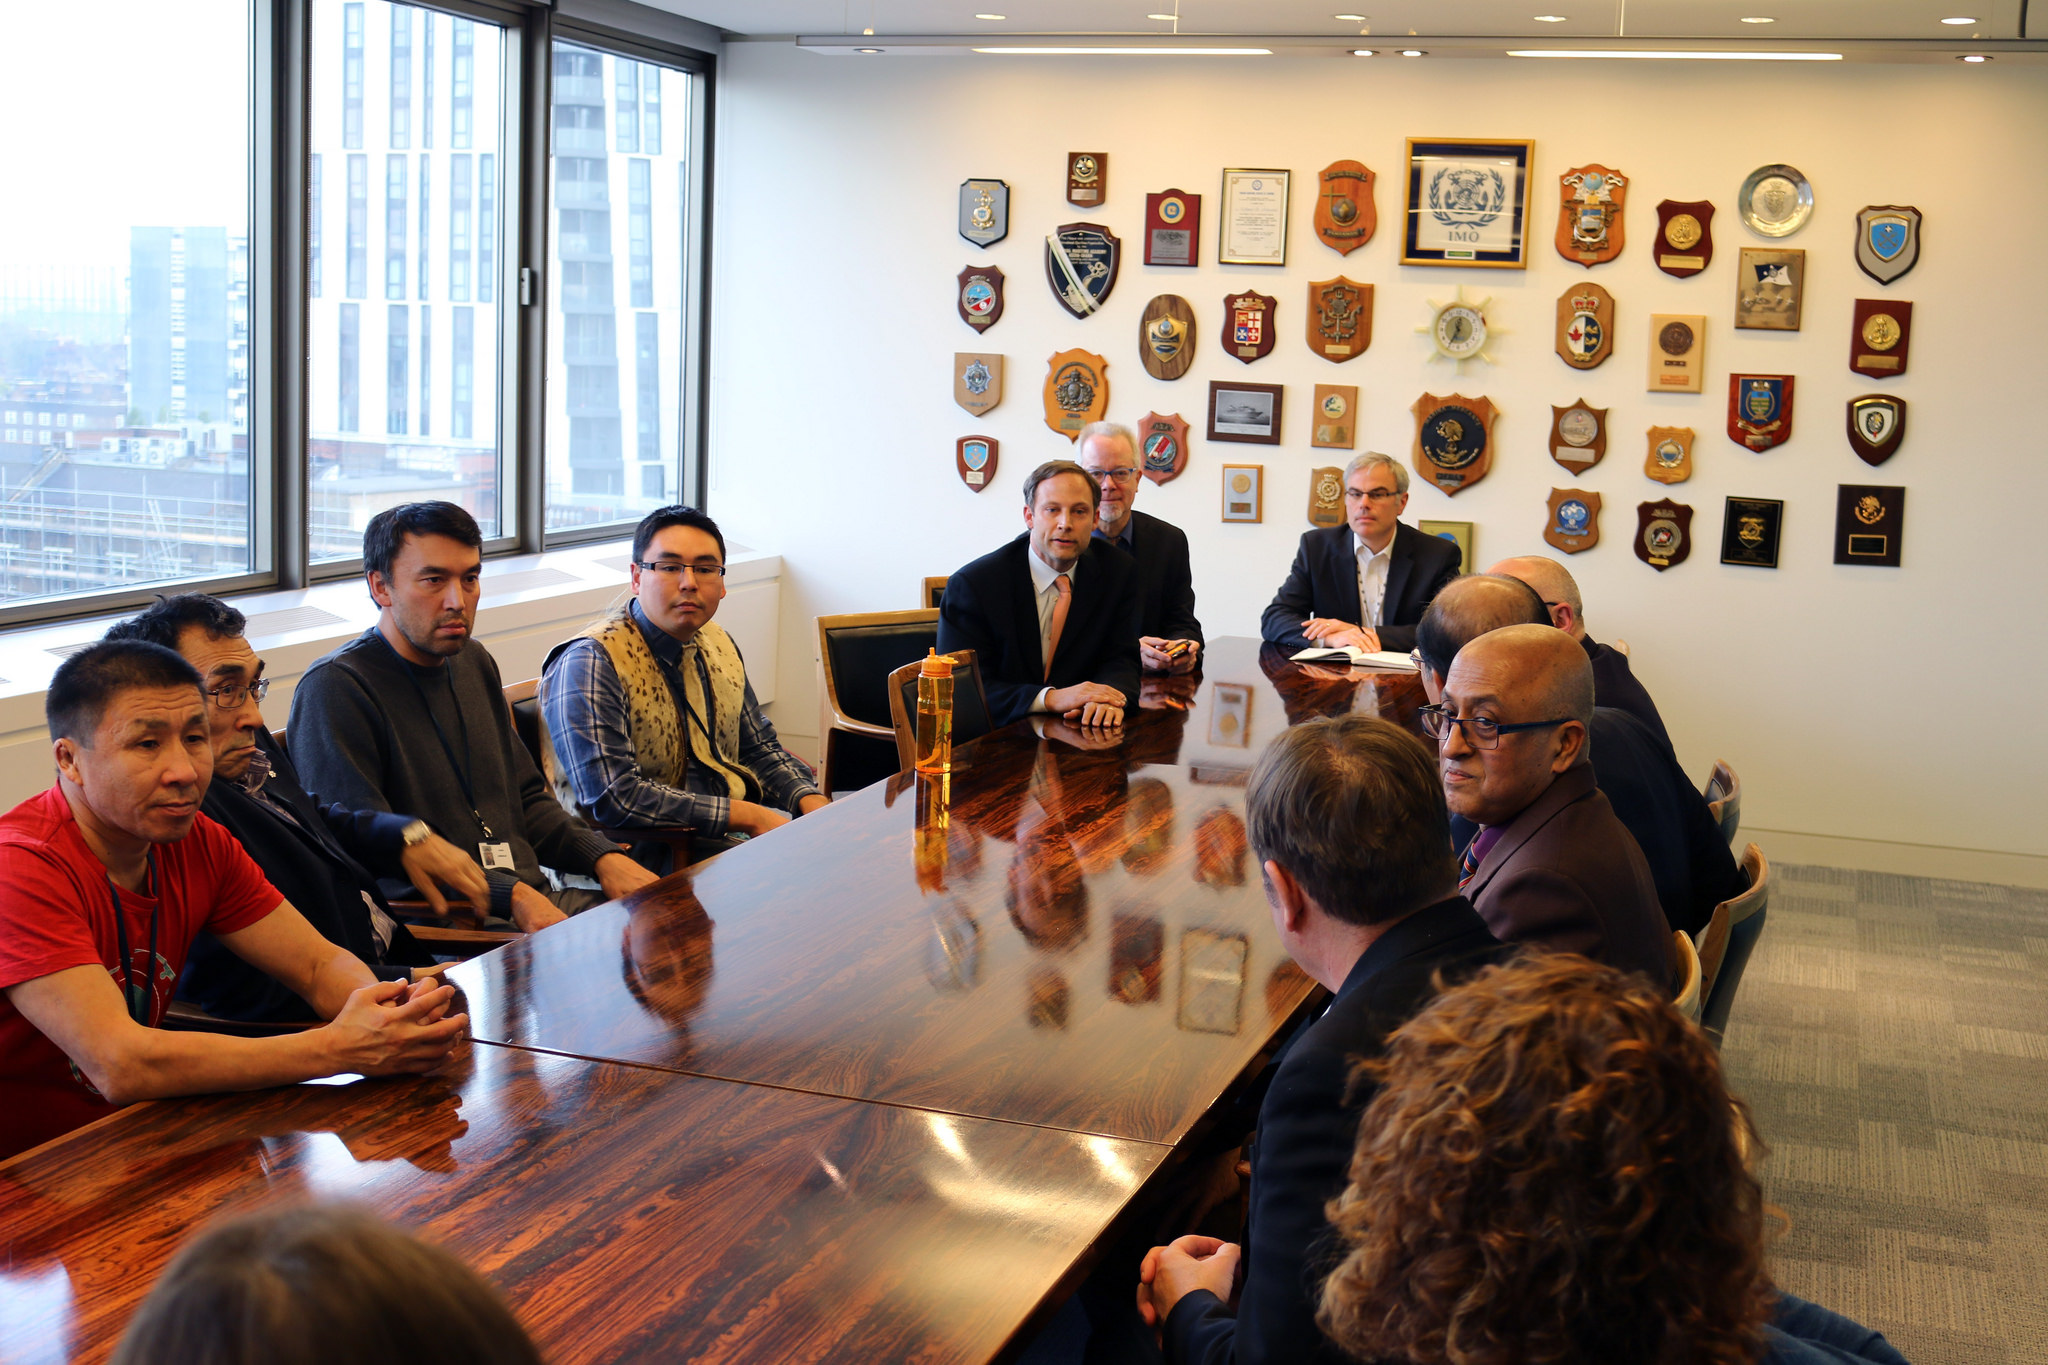 In visit to shipping regulator, Arctic indigenous groups call for end to heavy fuel oil in the region